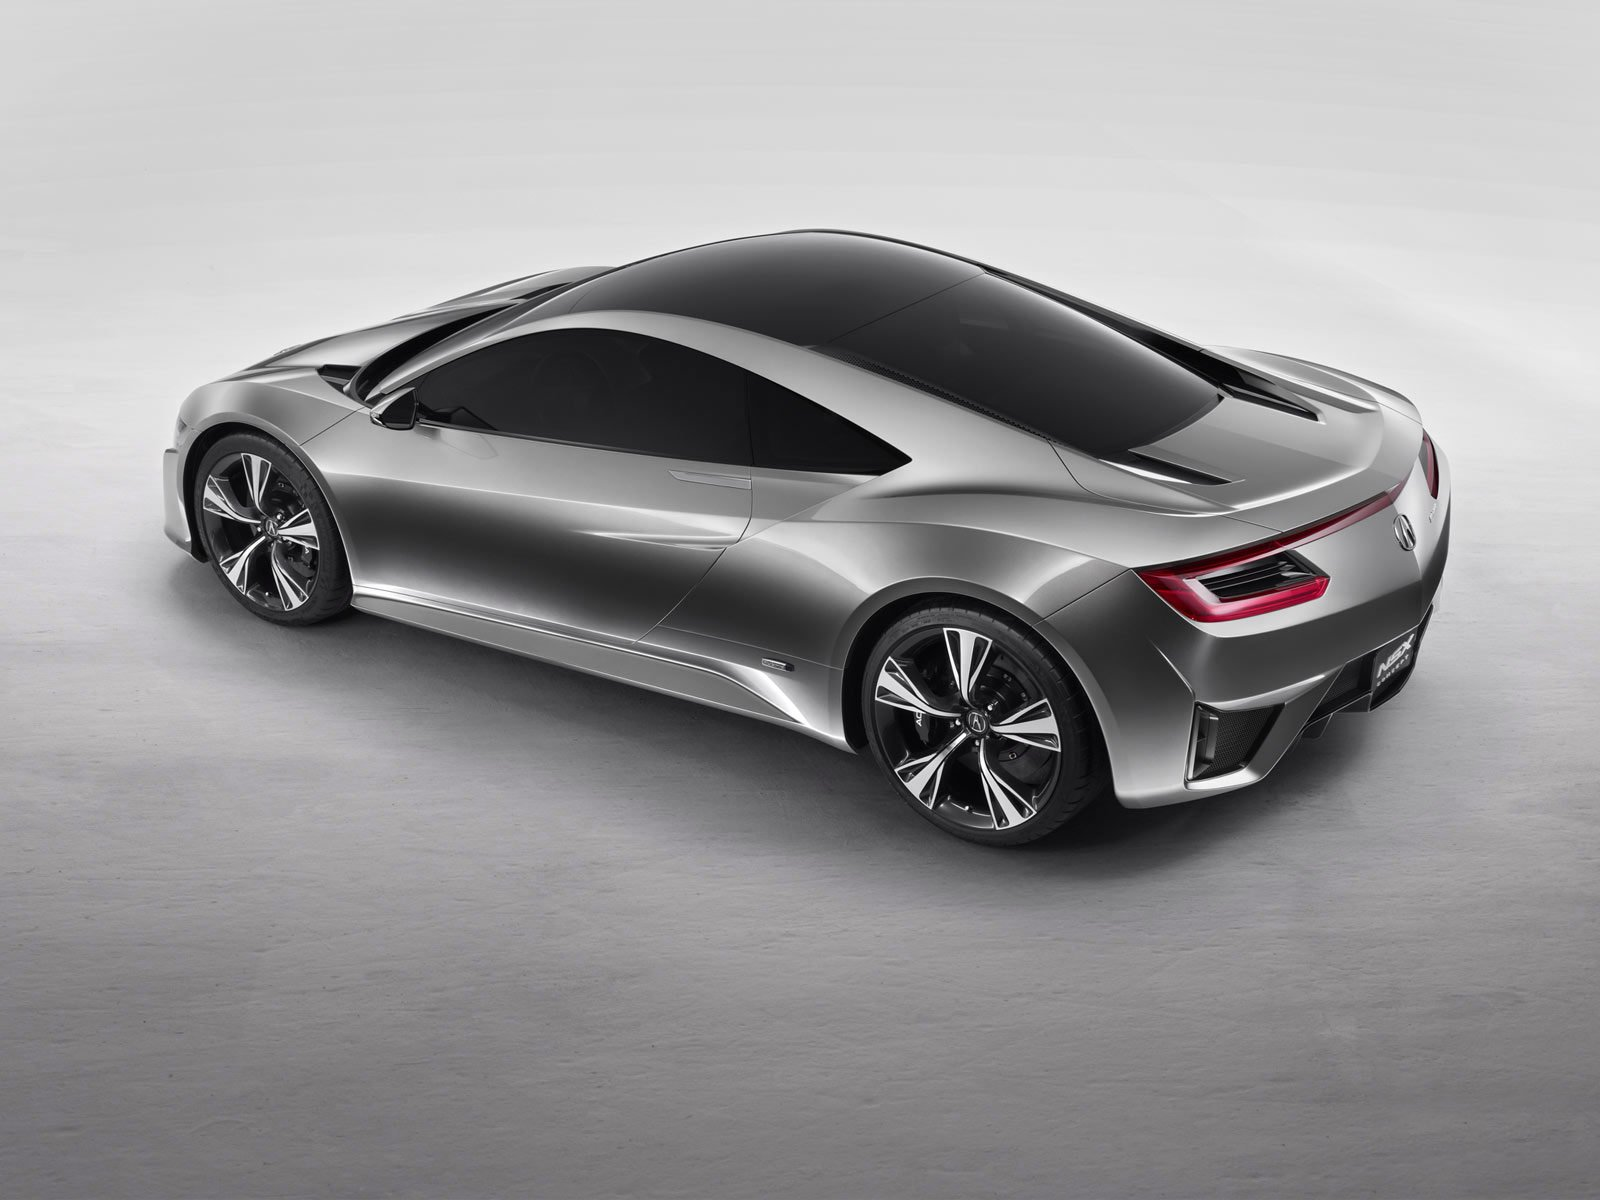 Latest Japanese Car Photos 2012 Acura Nsx Concept Free Download